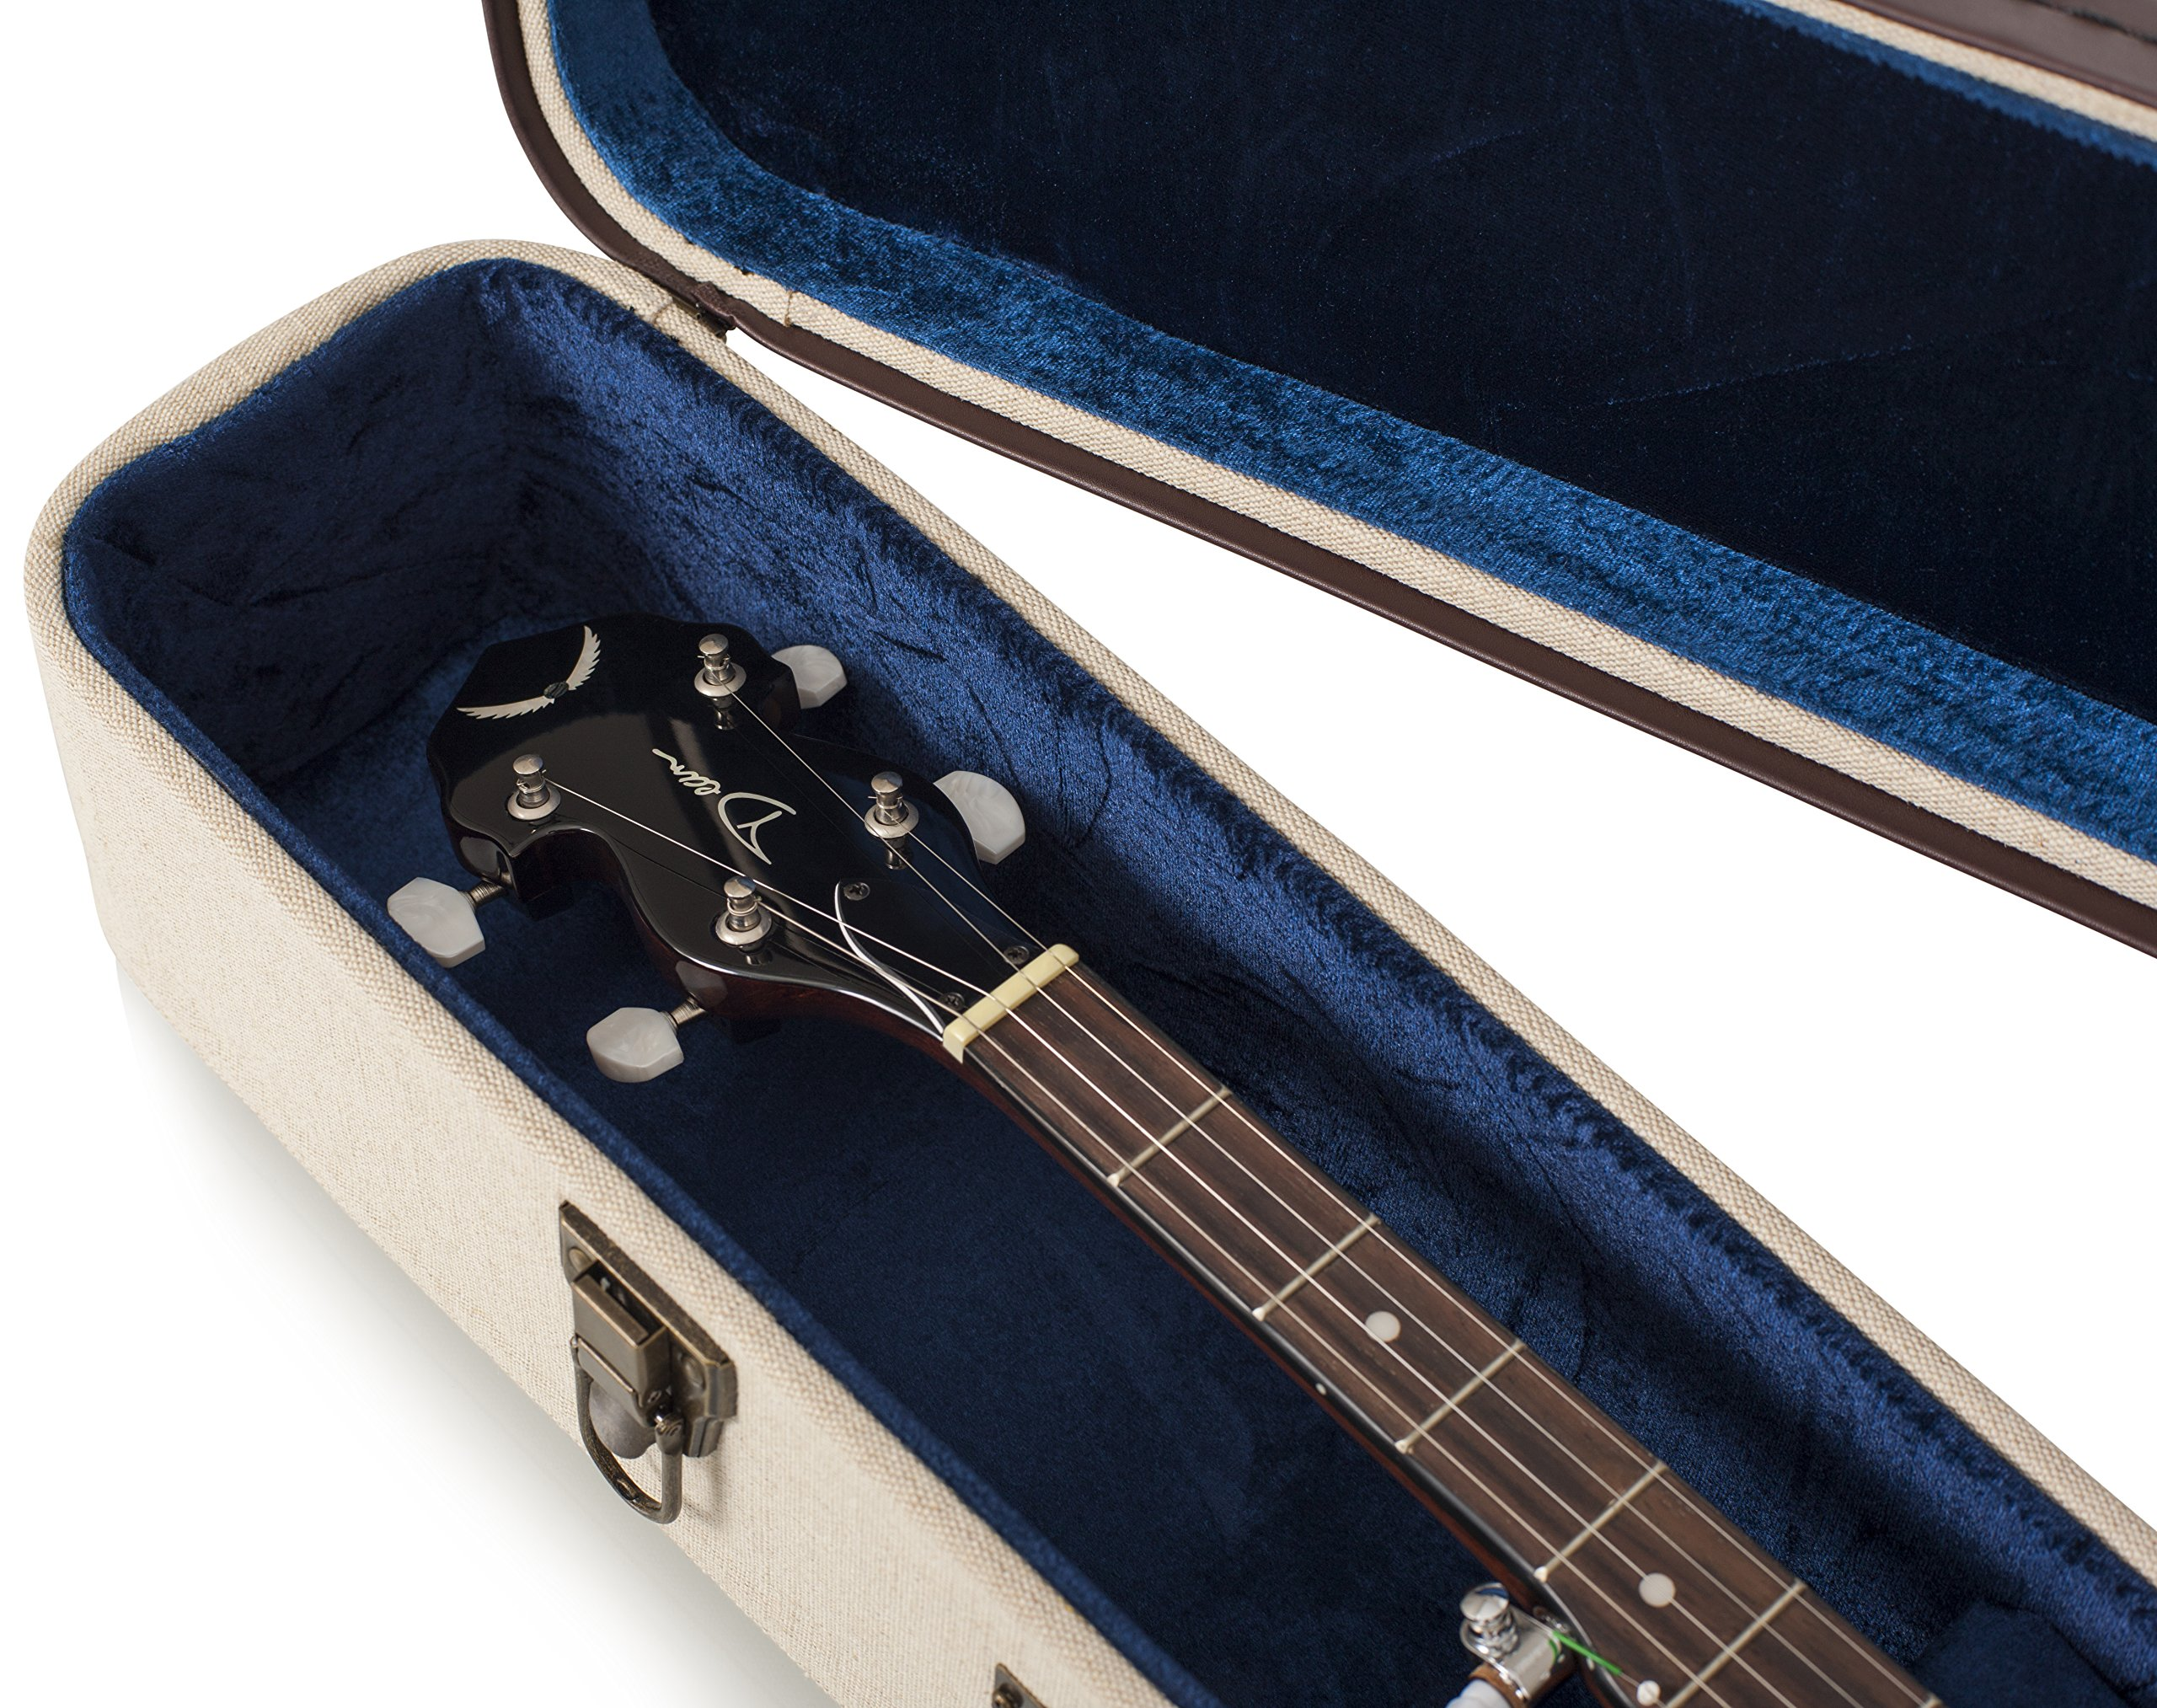 Gator Cases Journeyman Series Deluxe Wood Case for Banjos (GW-JM BANJO XL) by Gator (Image #8)